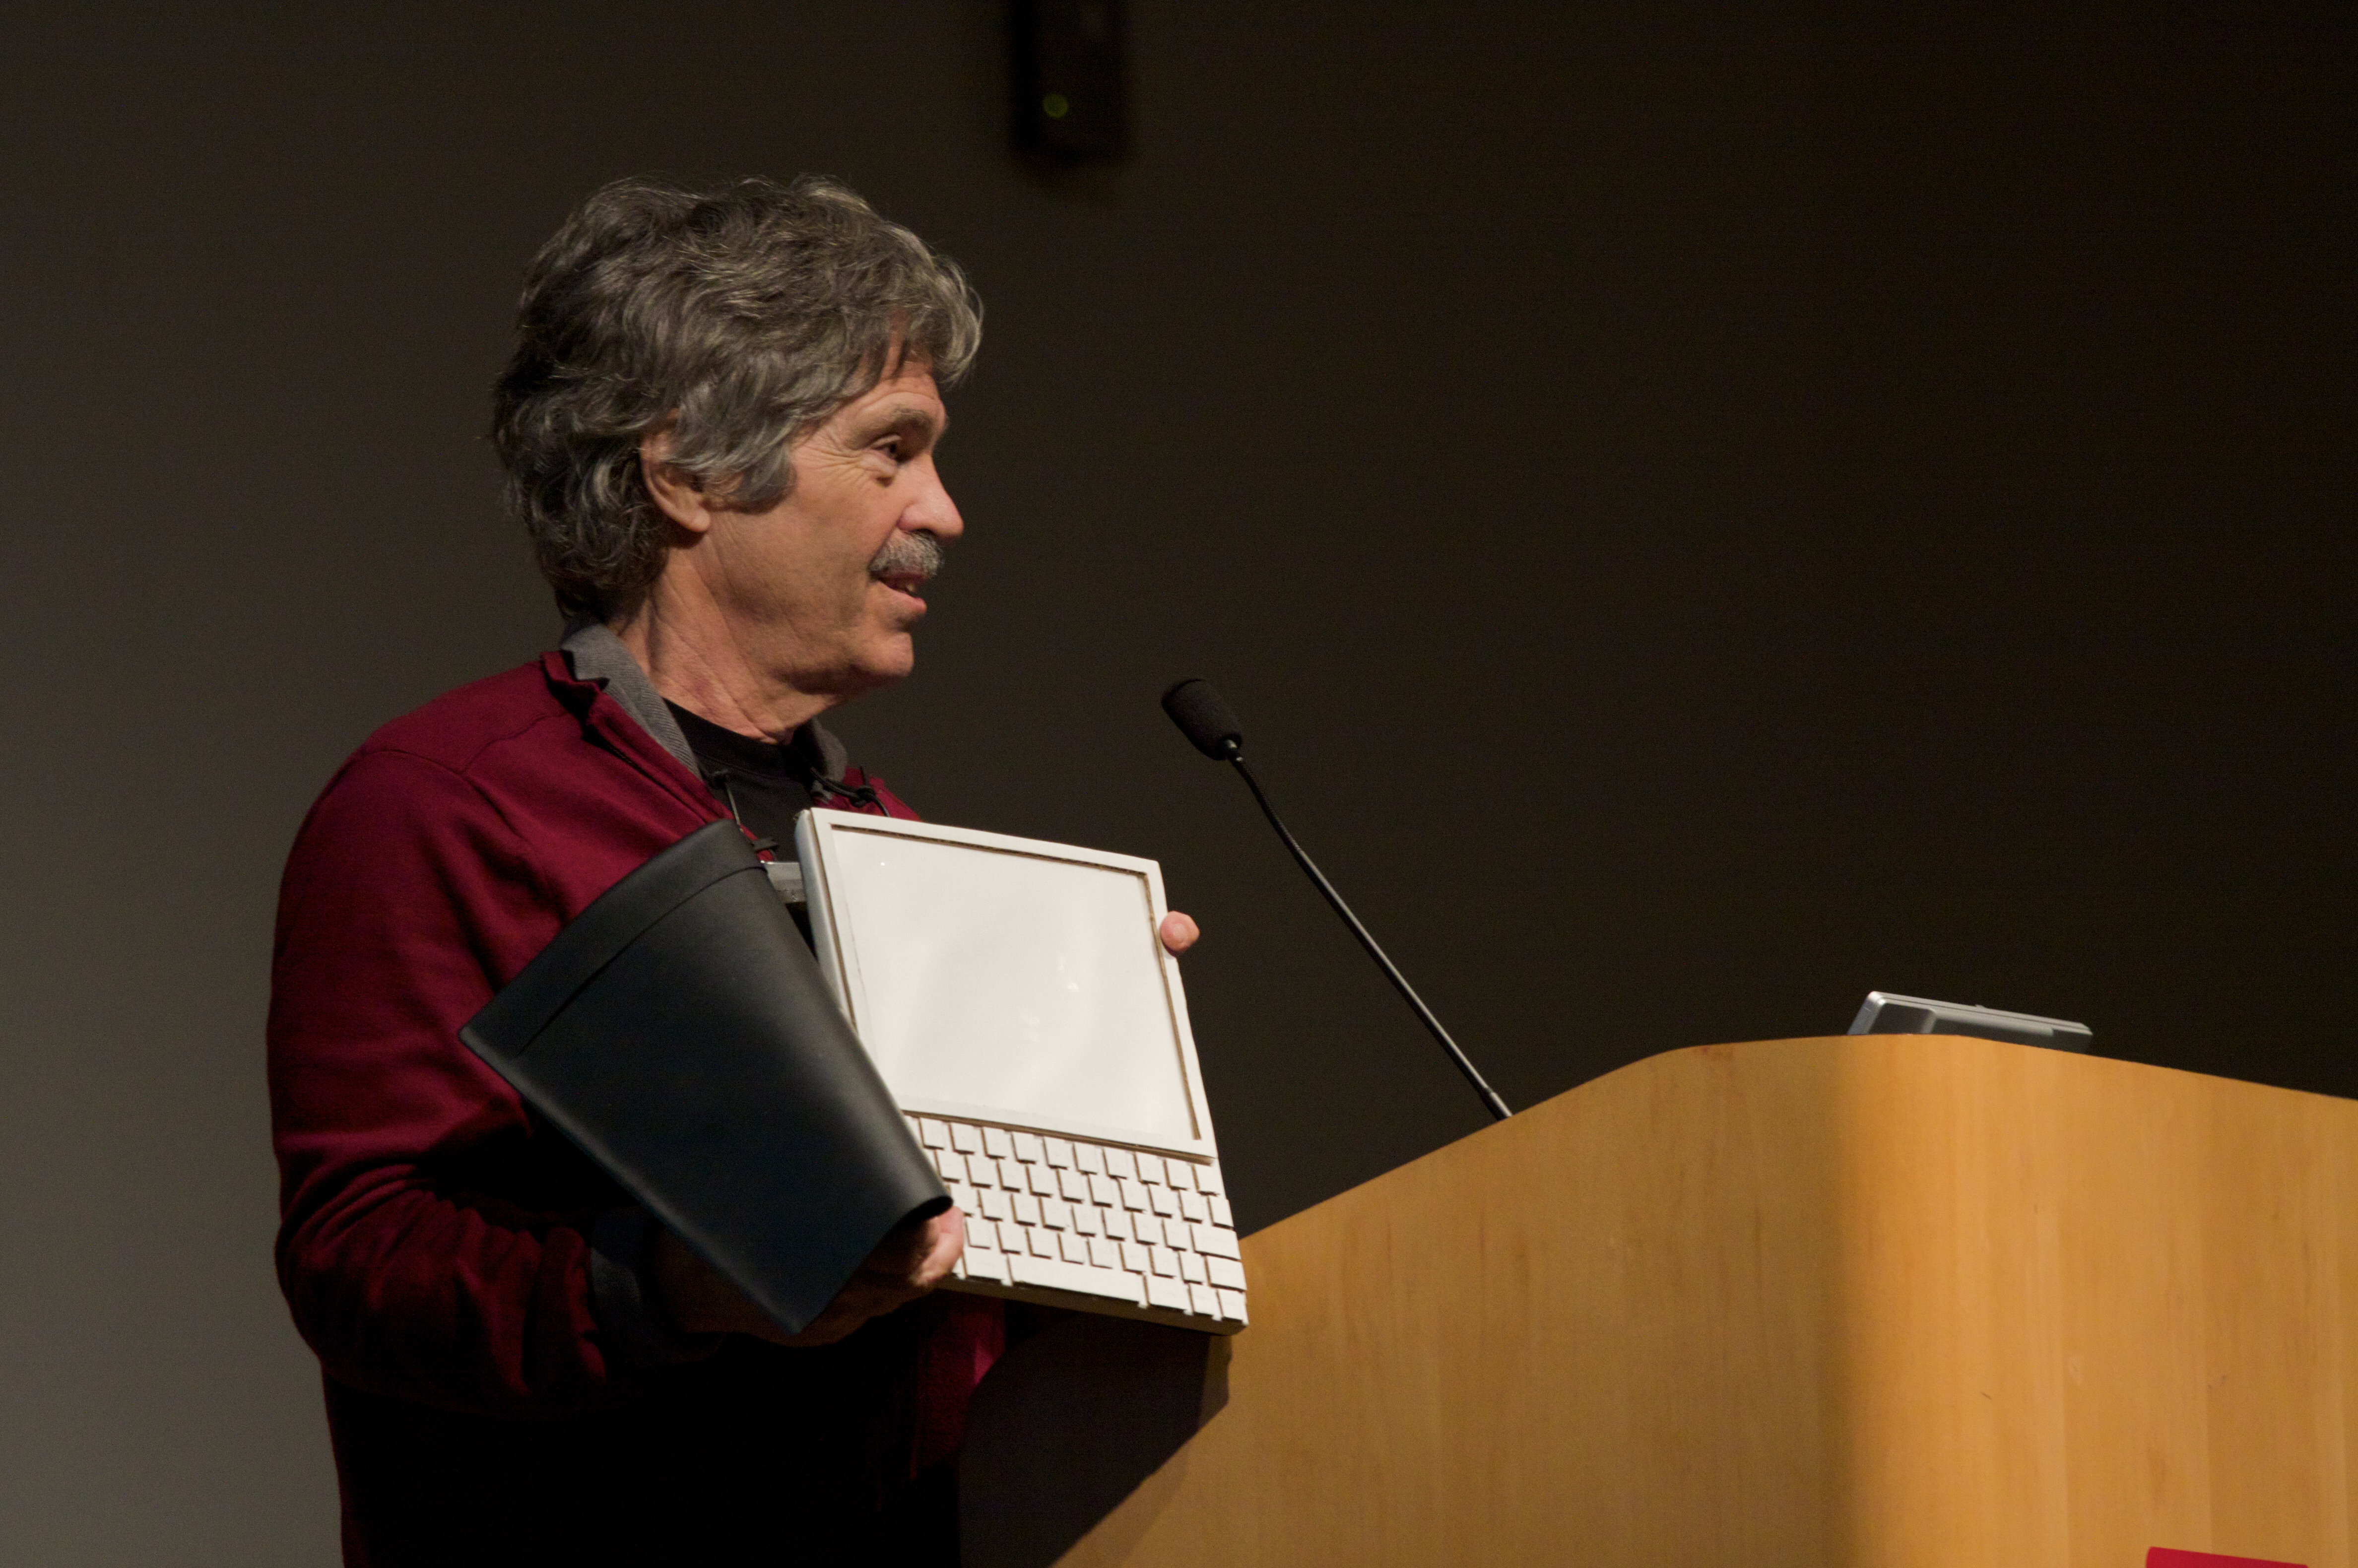 google maps san francisco with File Alan Kay And The Prototype Of Dynabook  Pt  5  3010032738 on 57623559 further 79102581 likewise EsCisiDuvZy likewise File alan kay and the prototype of dynabook  pt  5  3010032738 as well 35314957.